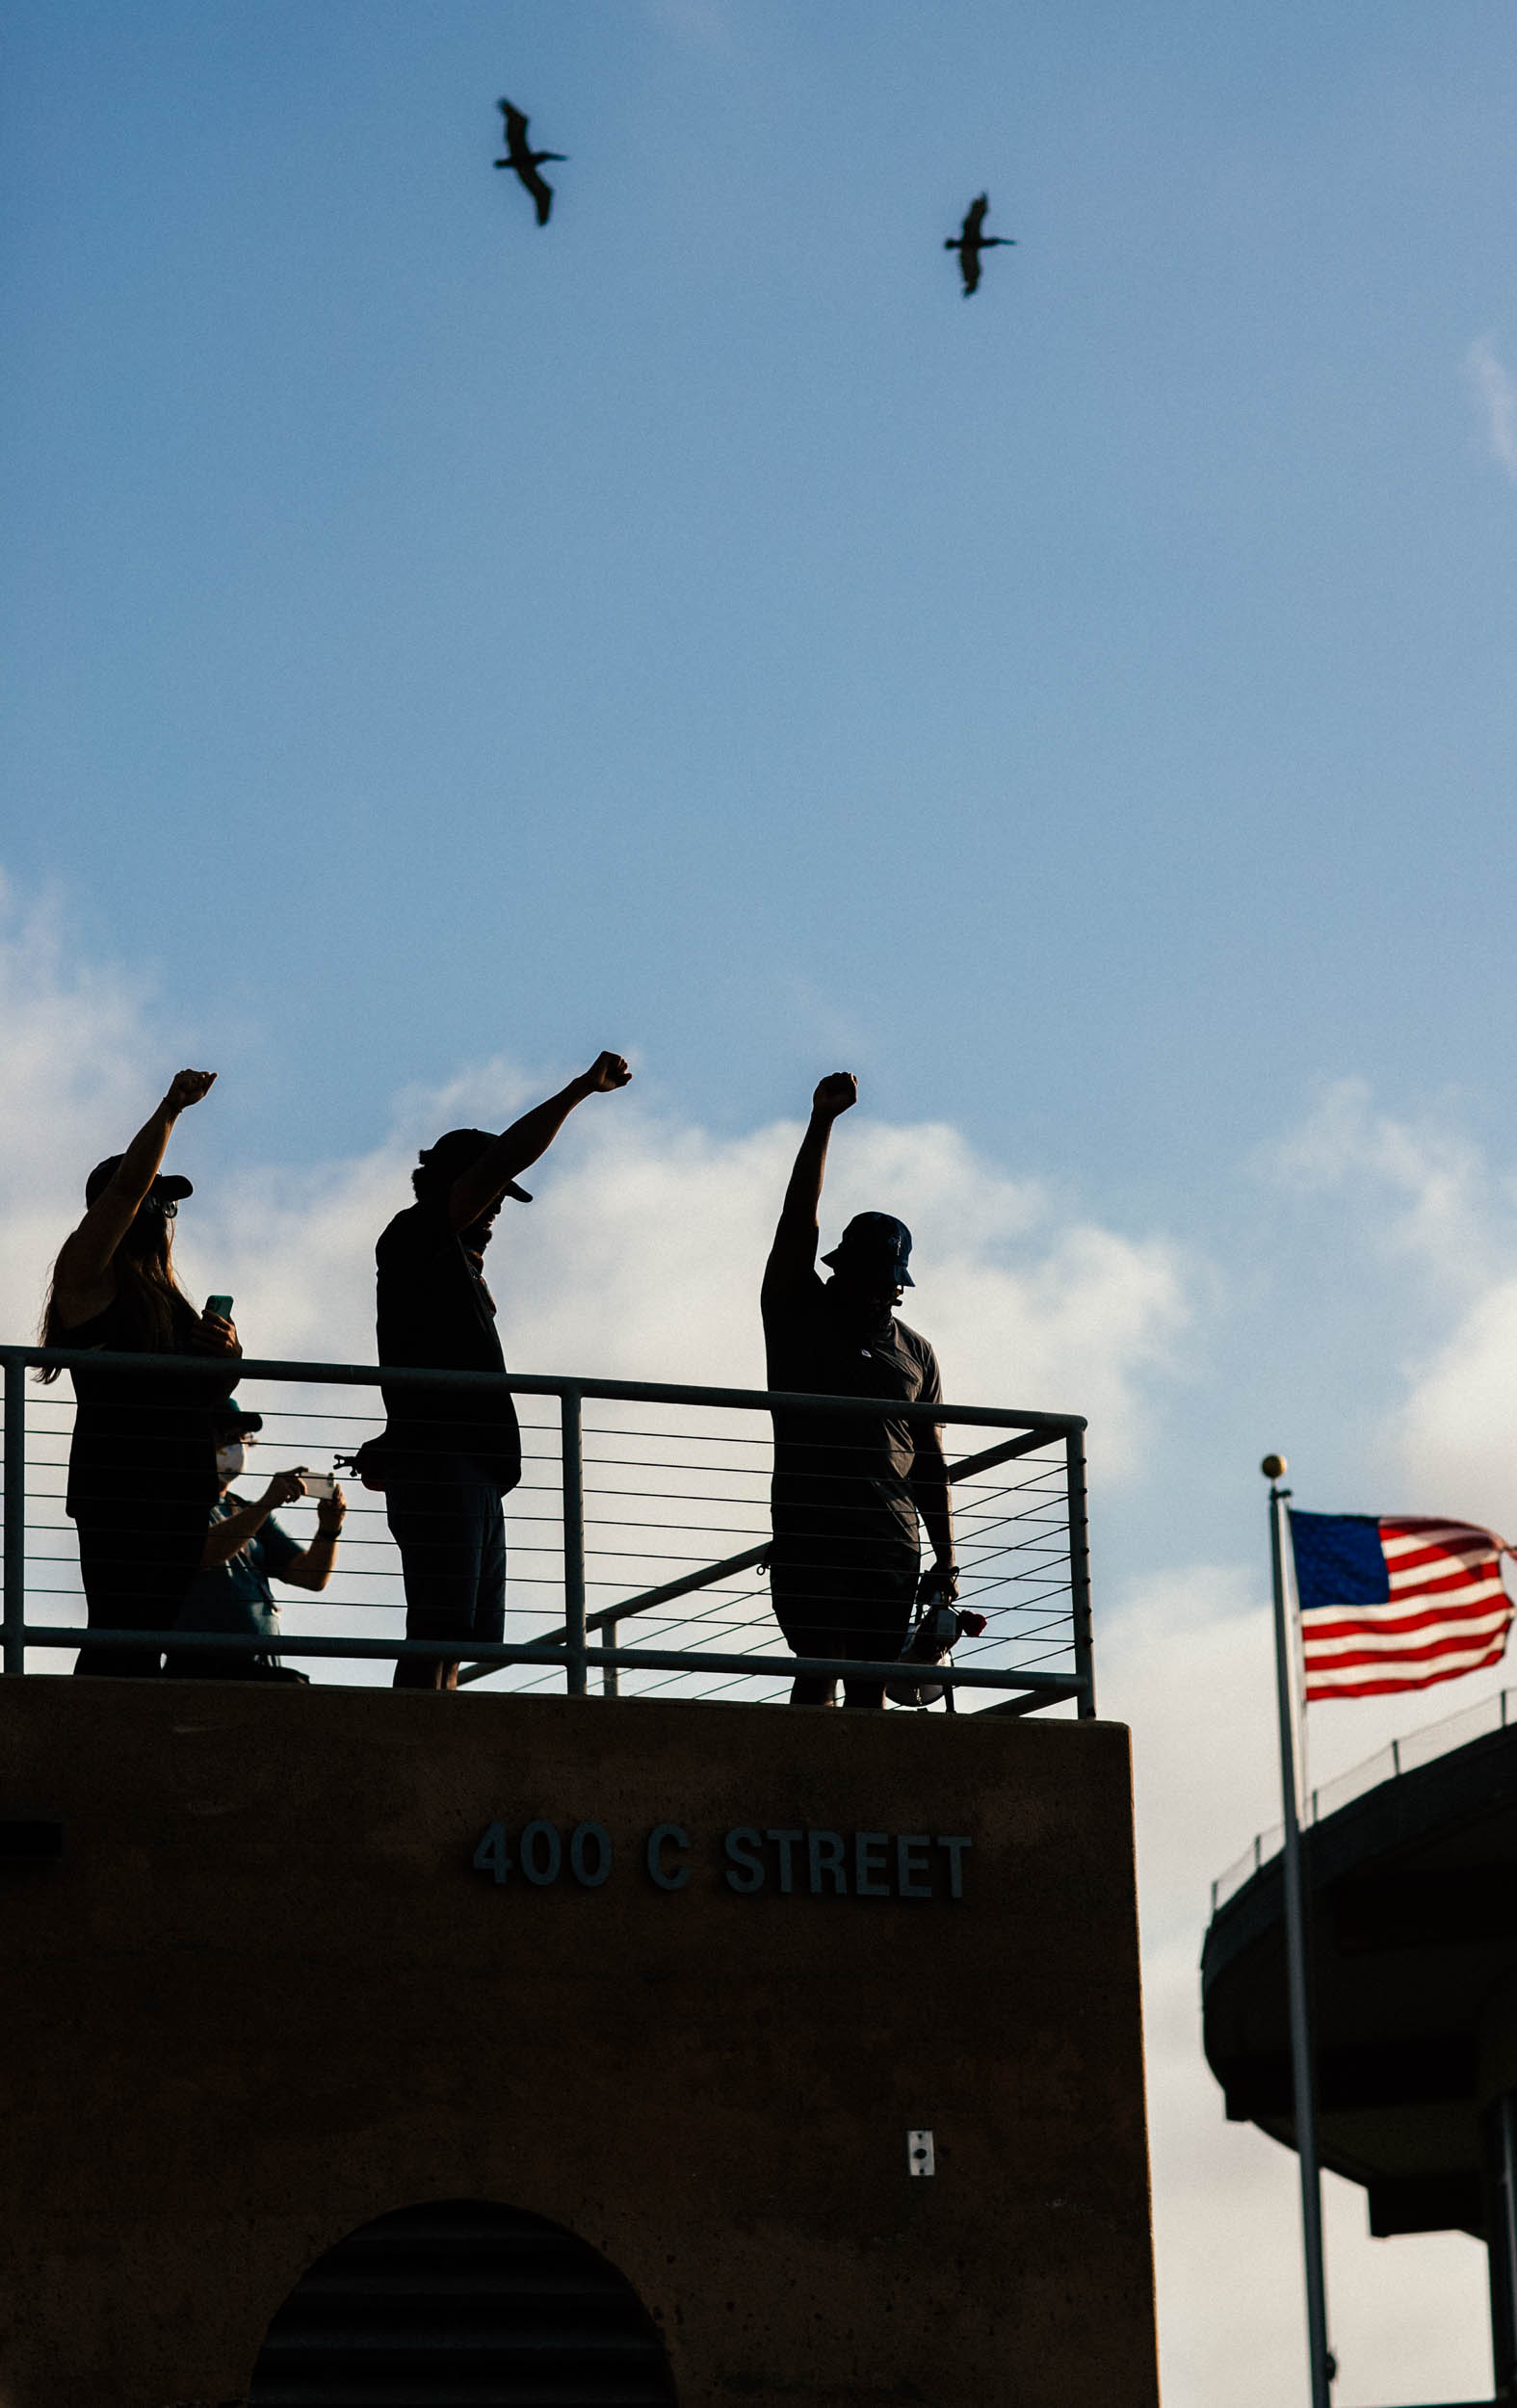 Silhouettes of Sal Masekela, Justin Wilkenfeld (founder of the Kindhumans Movement) and friends raise their fists in a moment of silence.